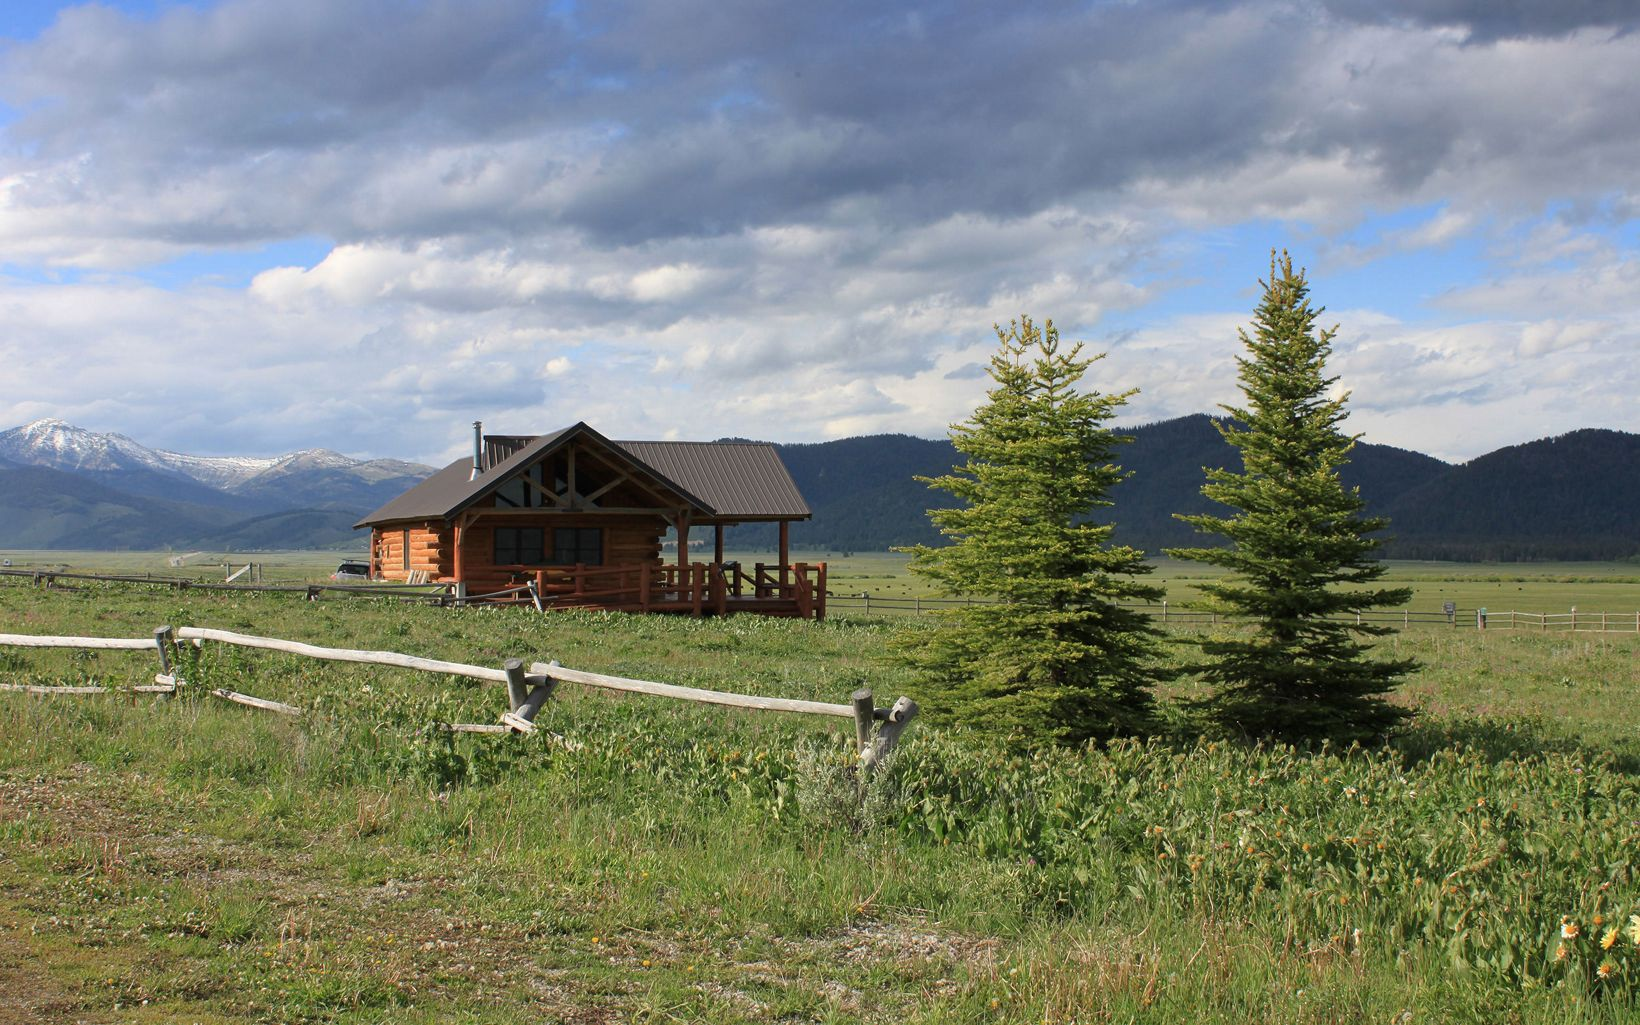 A modern log cabin with a wraparound deck stands in a flat grassland with snow-capped mountains in the distance.